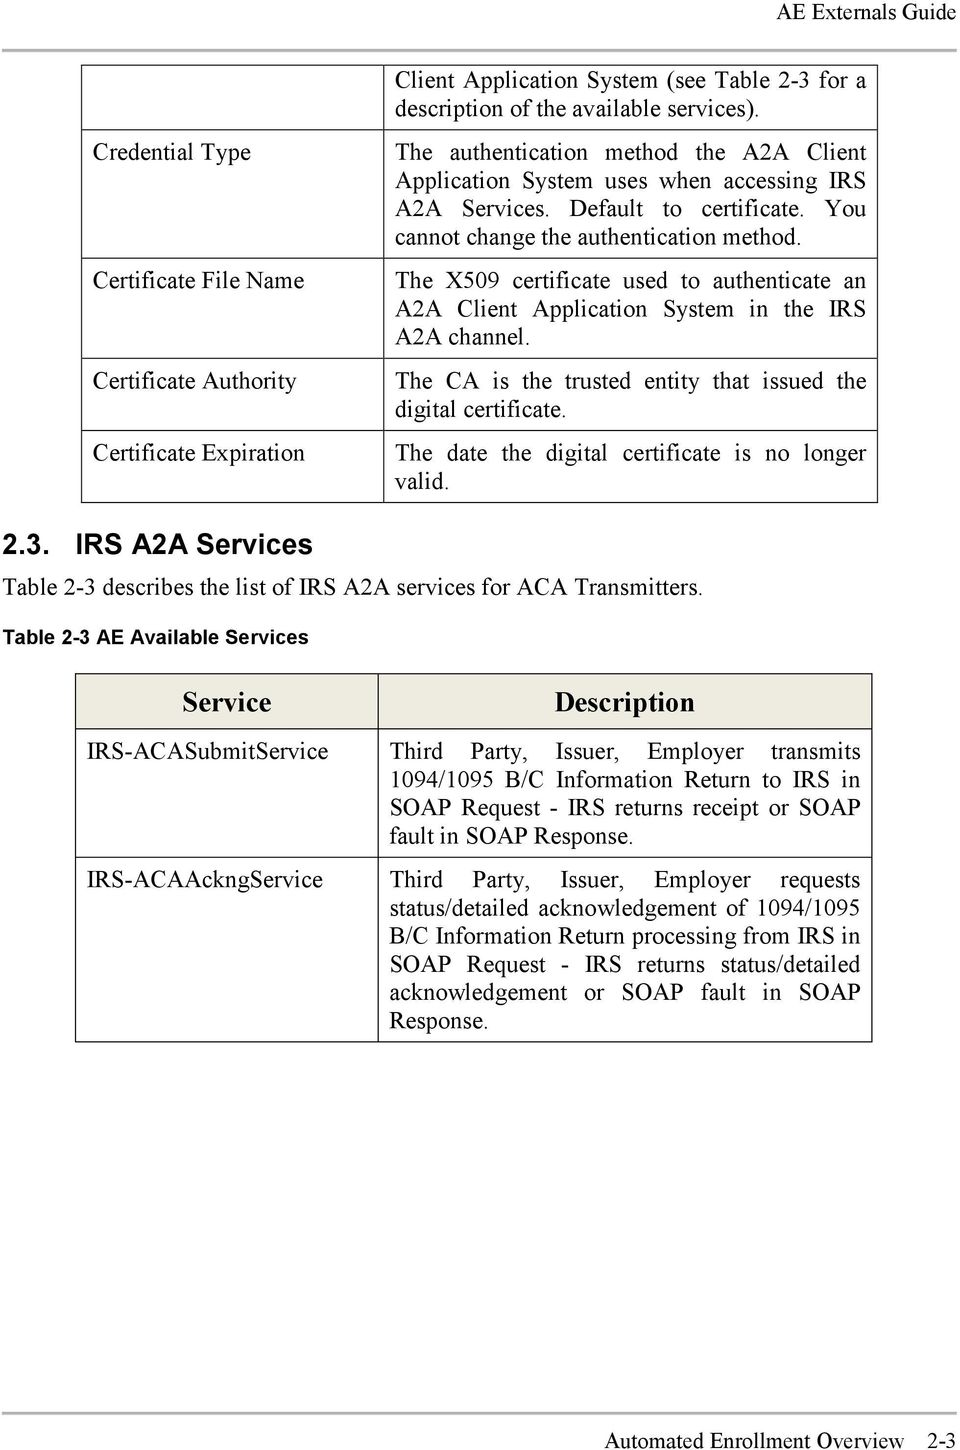 The X509 certificate used to authenticate an A2A Client Application System in the IRS A2A channel. The CA is the trusted entity that issued the digital certificate.